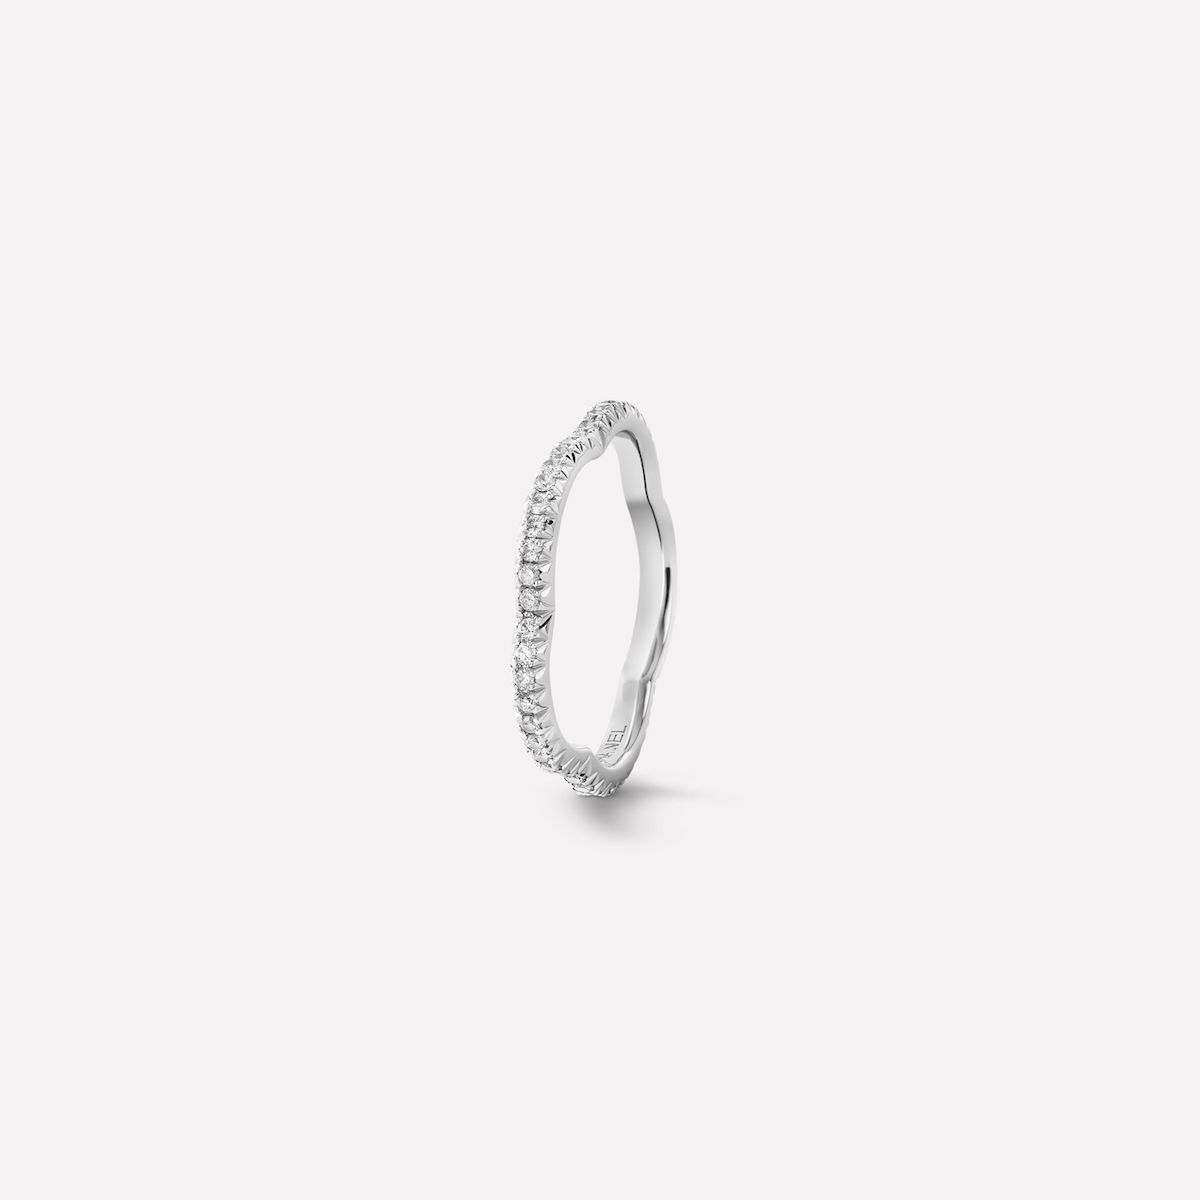 Chanel Camélia Ring in 18k White Gold and Diamonds